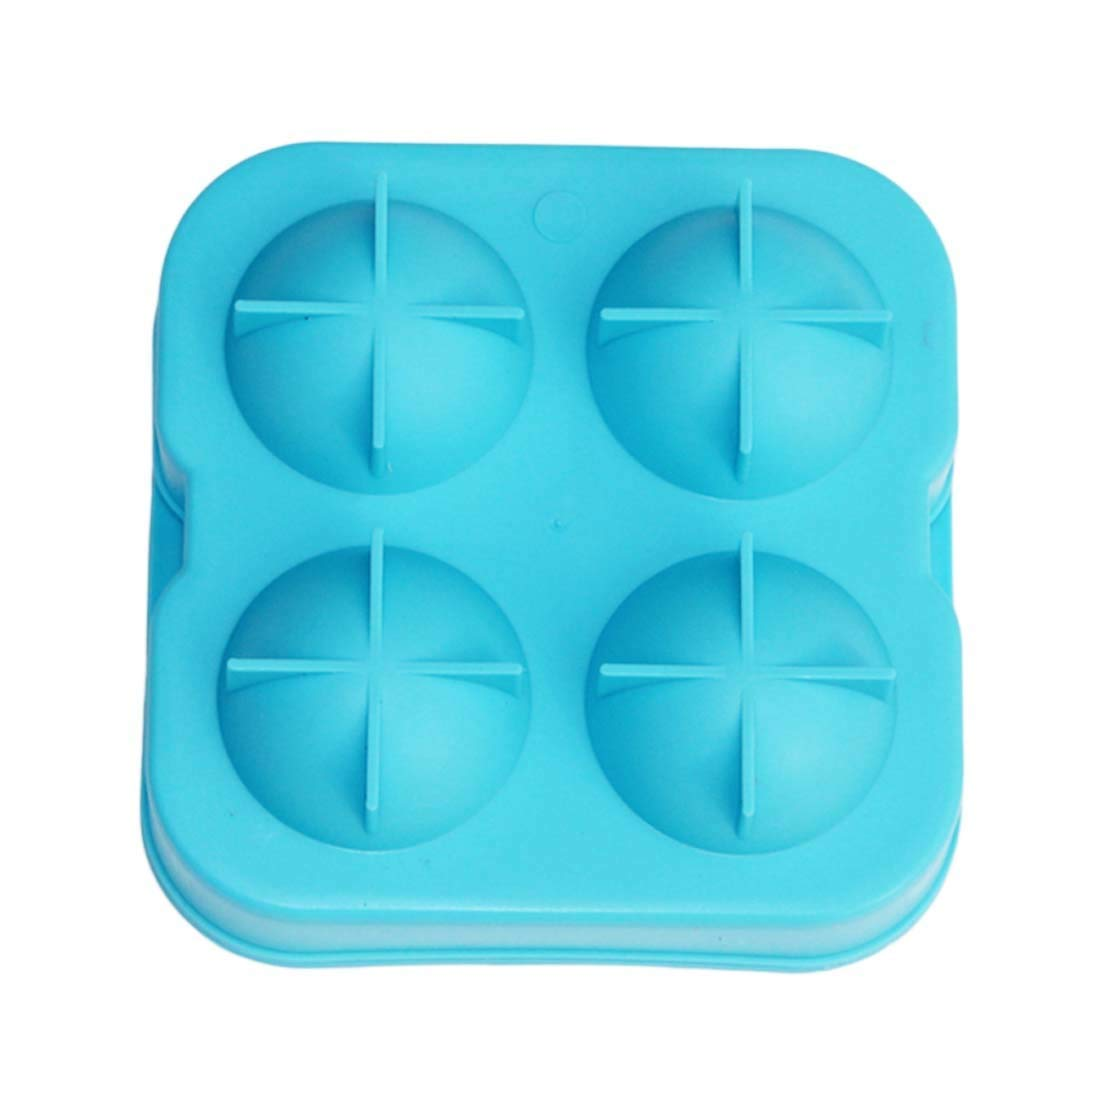 Ice Cream Tubs - 1pc 4 Large Silicone Ice Molds Maker Cocktail Whiskey Ball Cube Tray Bar - Freezer Tubs Lids Girls Disposable Cream Cream Tubs Cube Maker Commercial Round Cocktail Rubber Tra